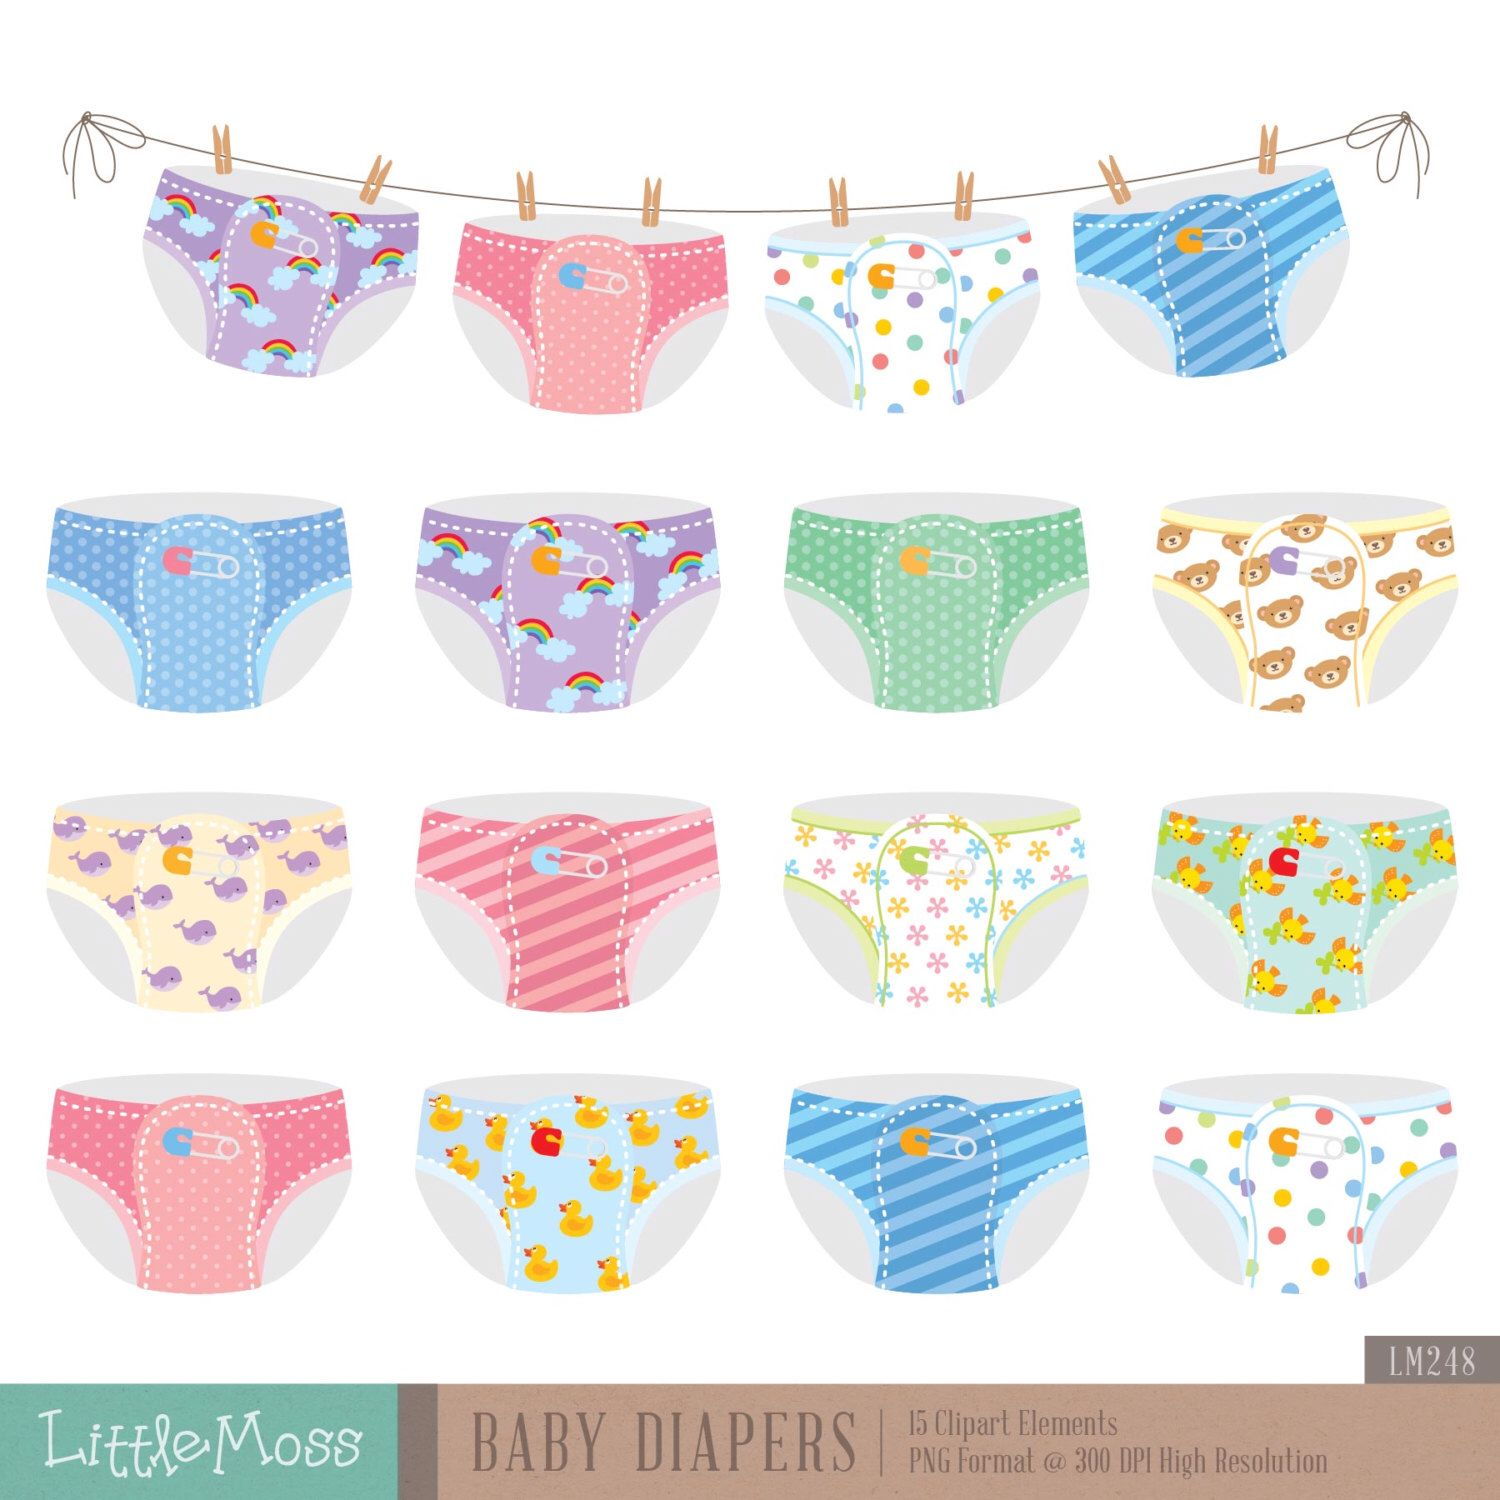 Baby Diapers Digital Clipart by LittleMoss on Etsy https